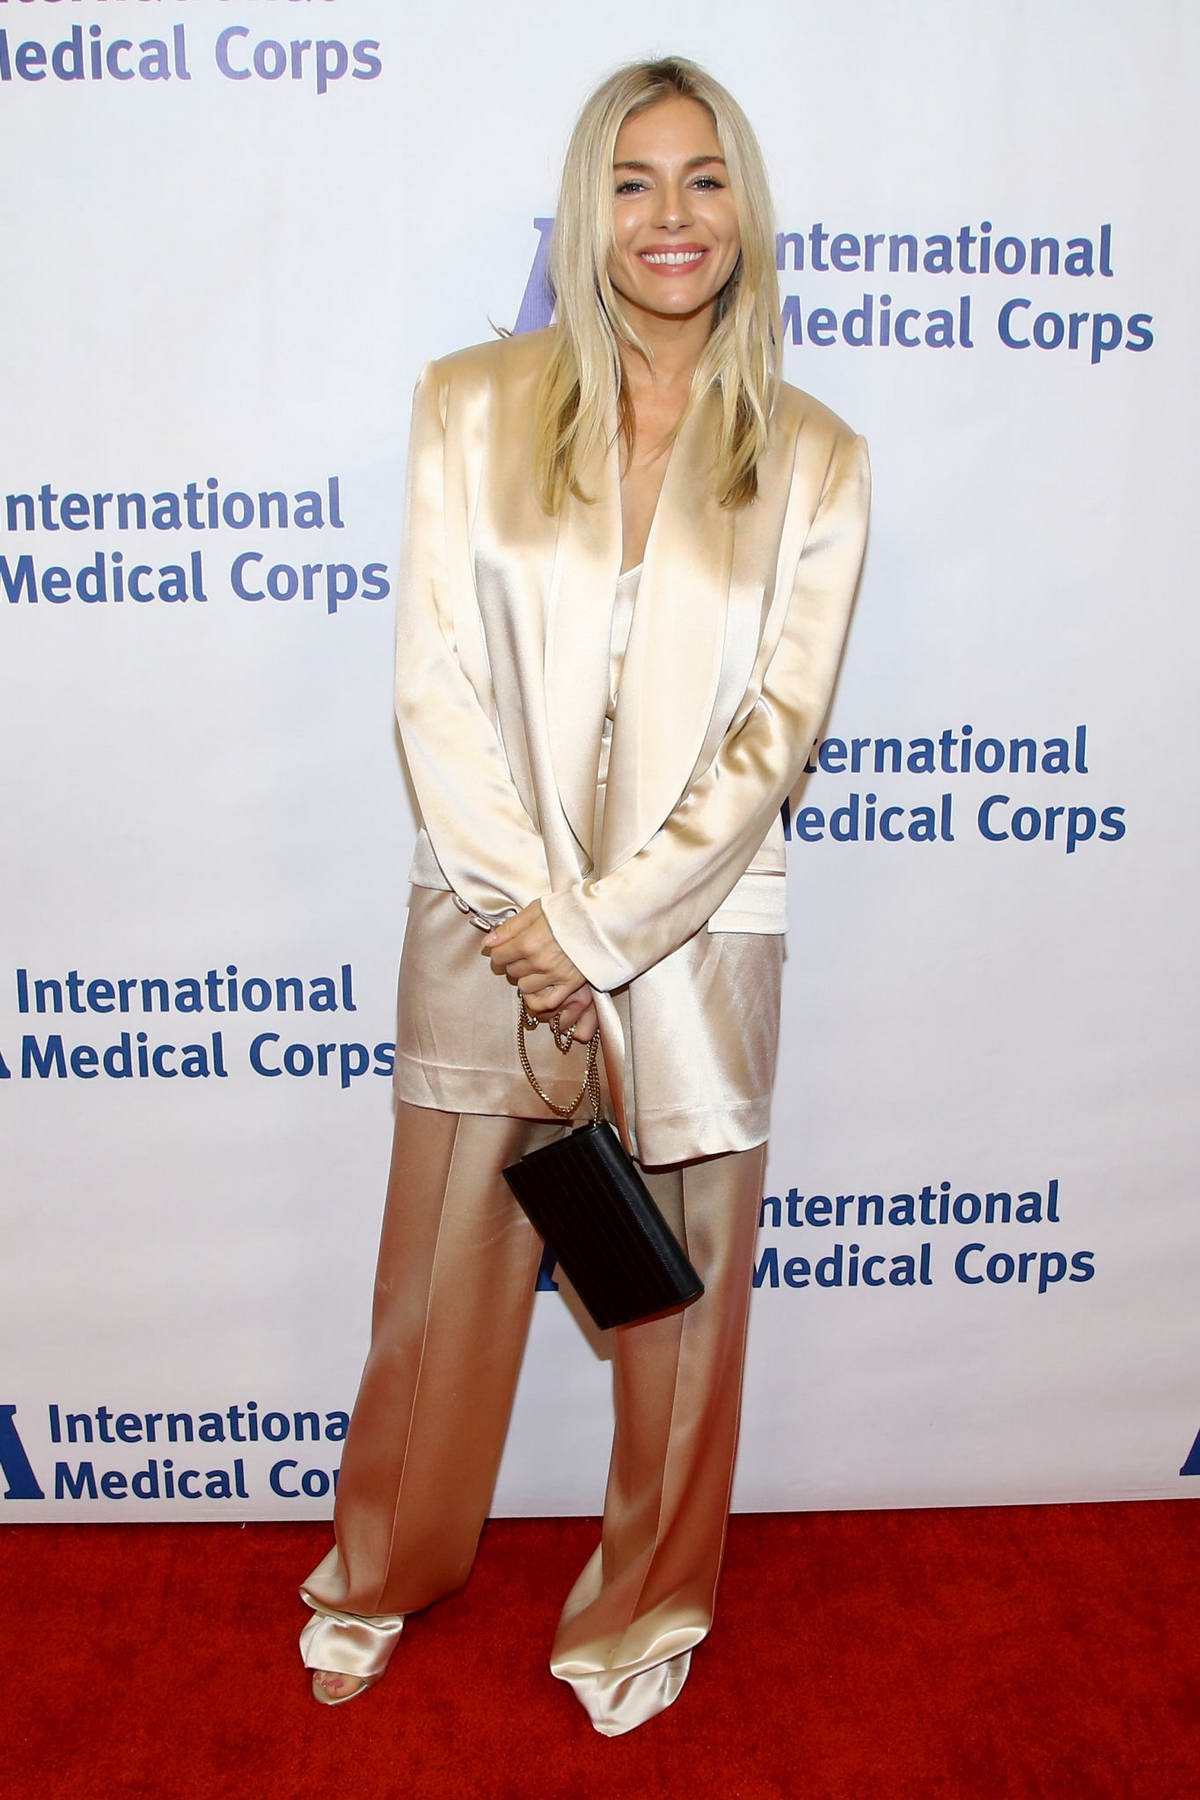 Sienna Miller attends the International Medical Corps' Annual Awards Celebration in Beverly Hills, Los Angeles